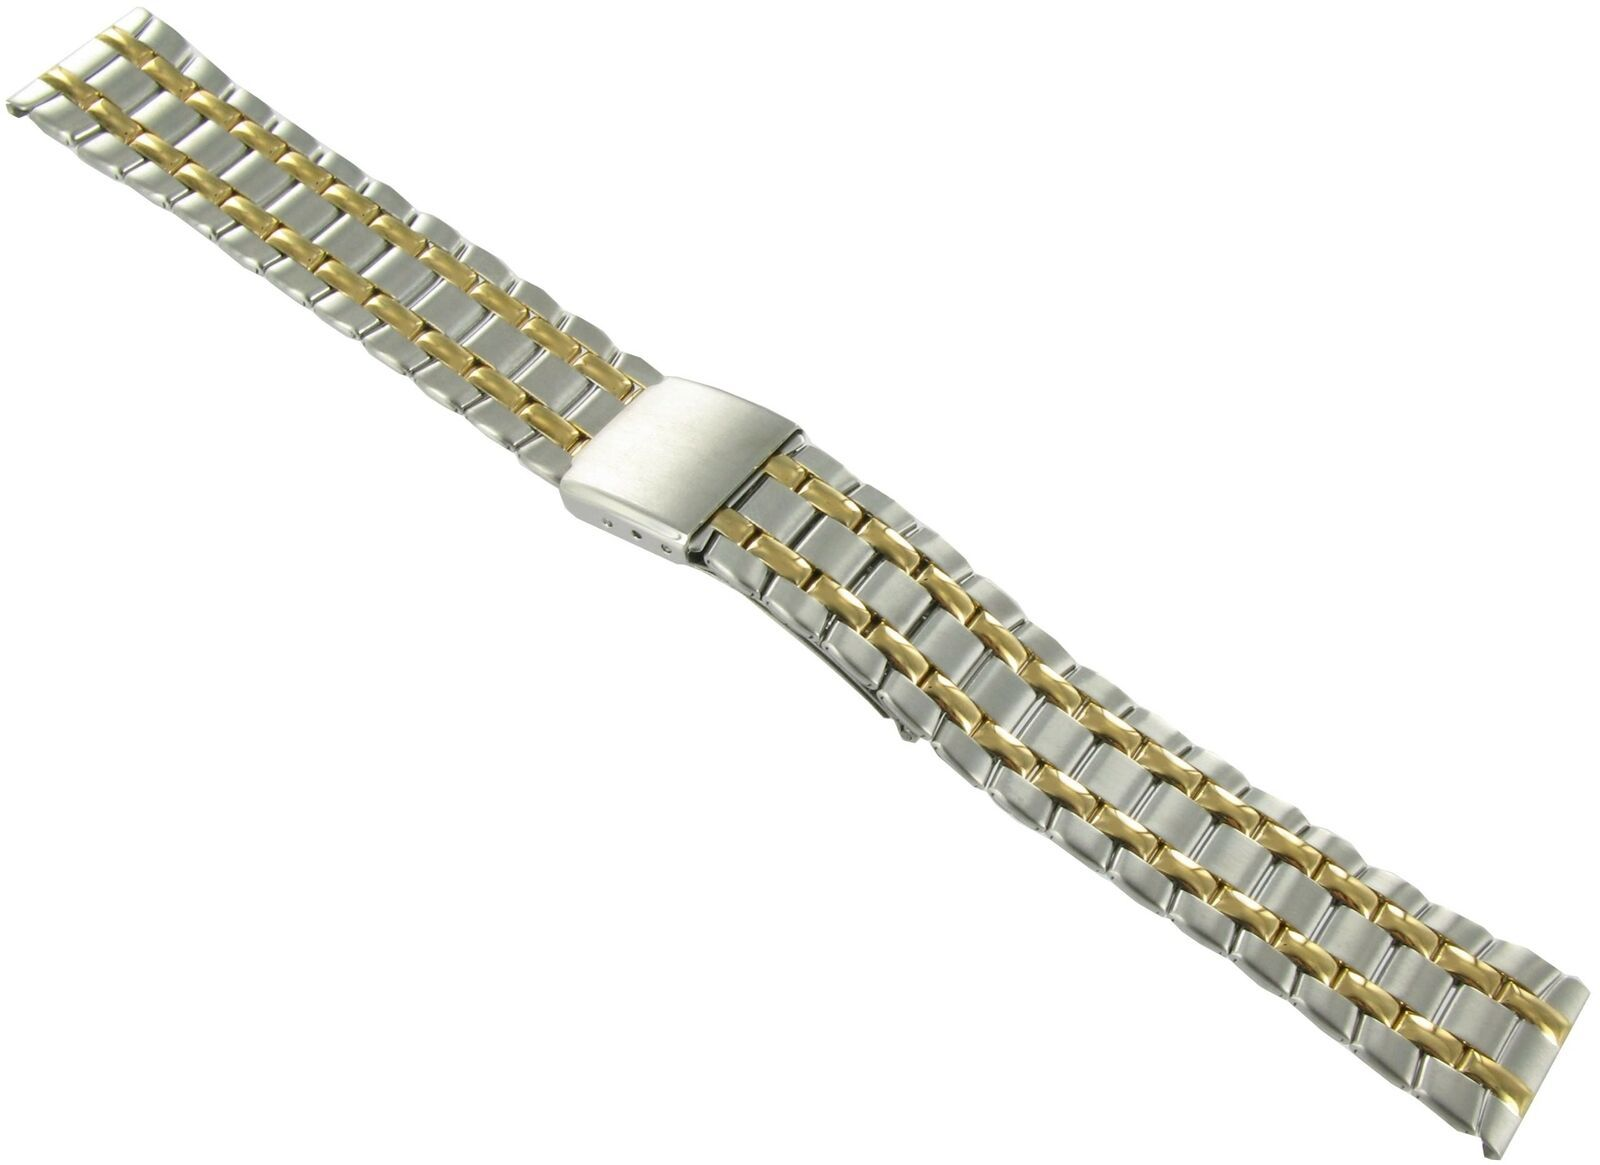 Primary image for 18mm Speidel Gold and Silver Tone Deployment Buckle Watch Band 1621... SHIPSFREE